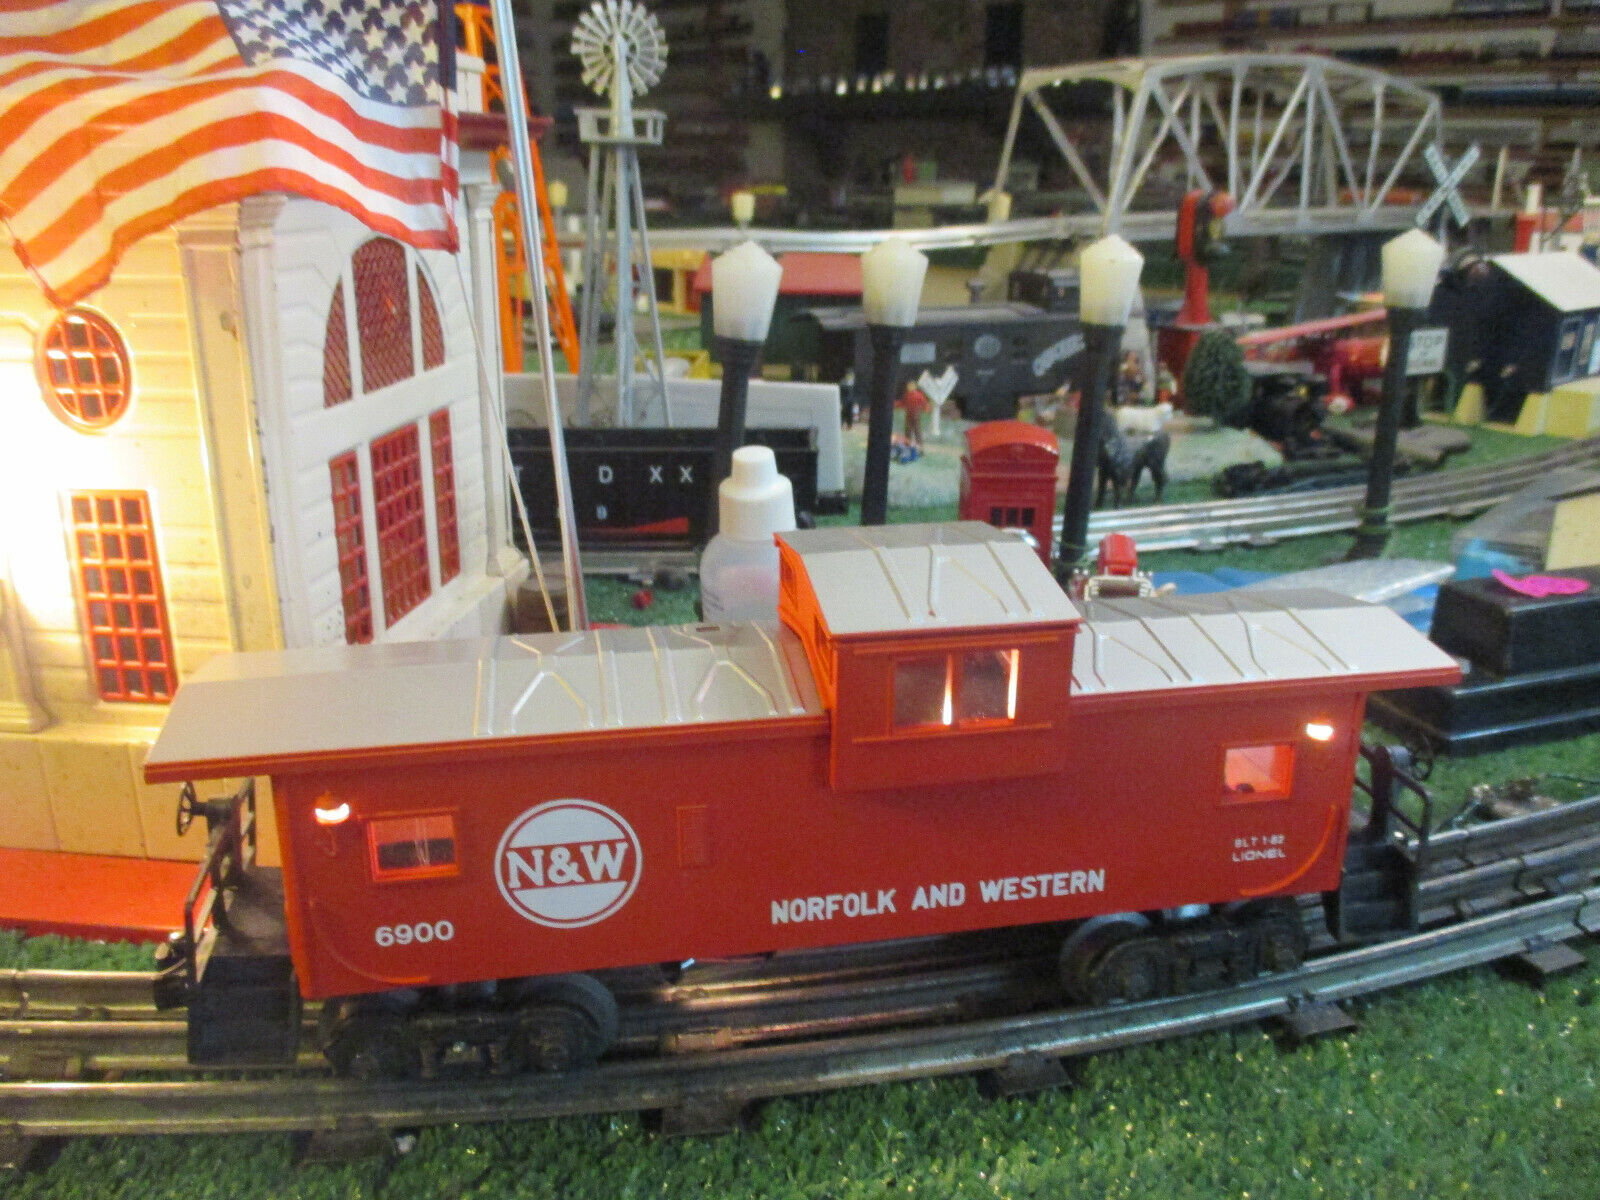 LIONEL MOD 6900 N&W EXTENDED VISION  CABOOSE LIMITED ED 1LLUM 1982 NIOB